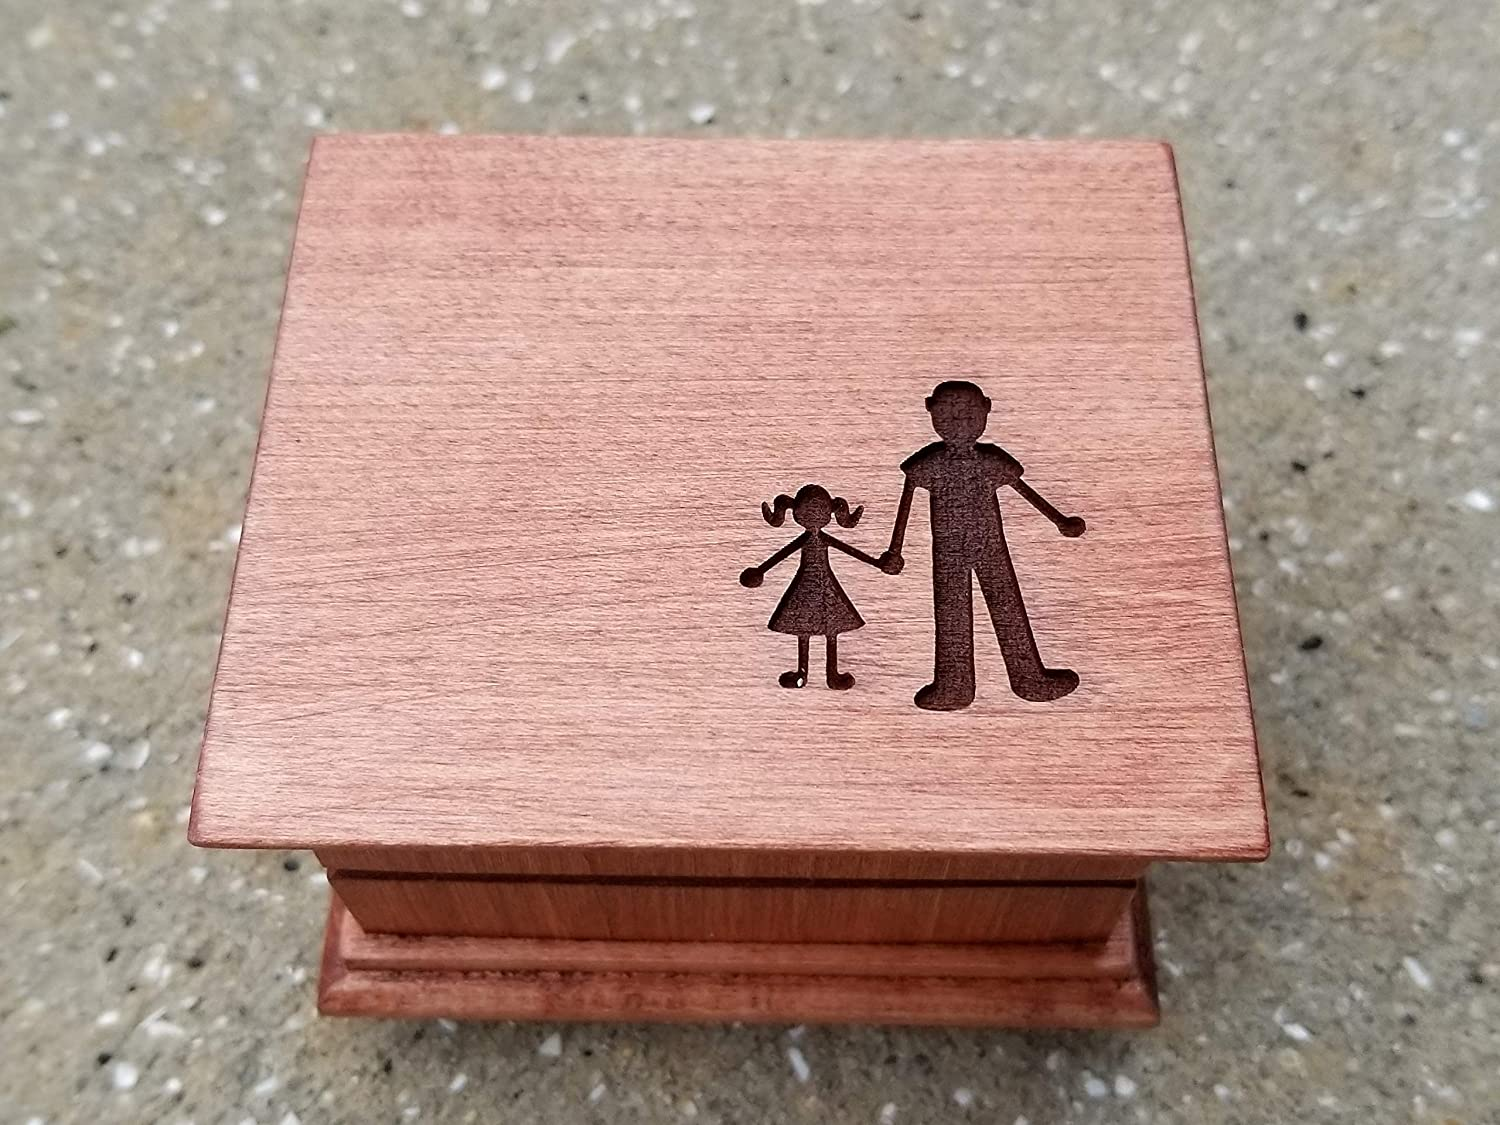 Engraved music box with a son and or father Save money Tulsa Mall daughter